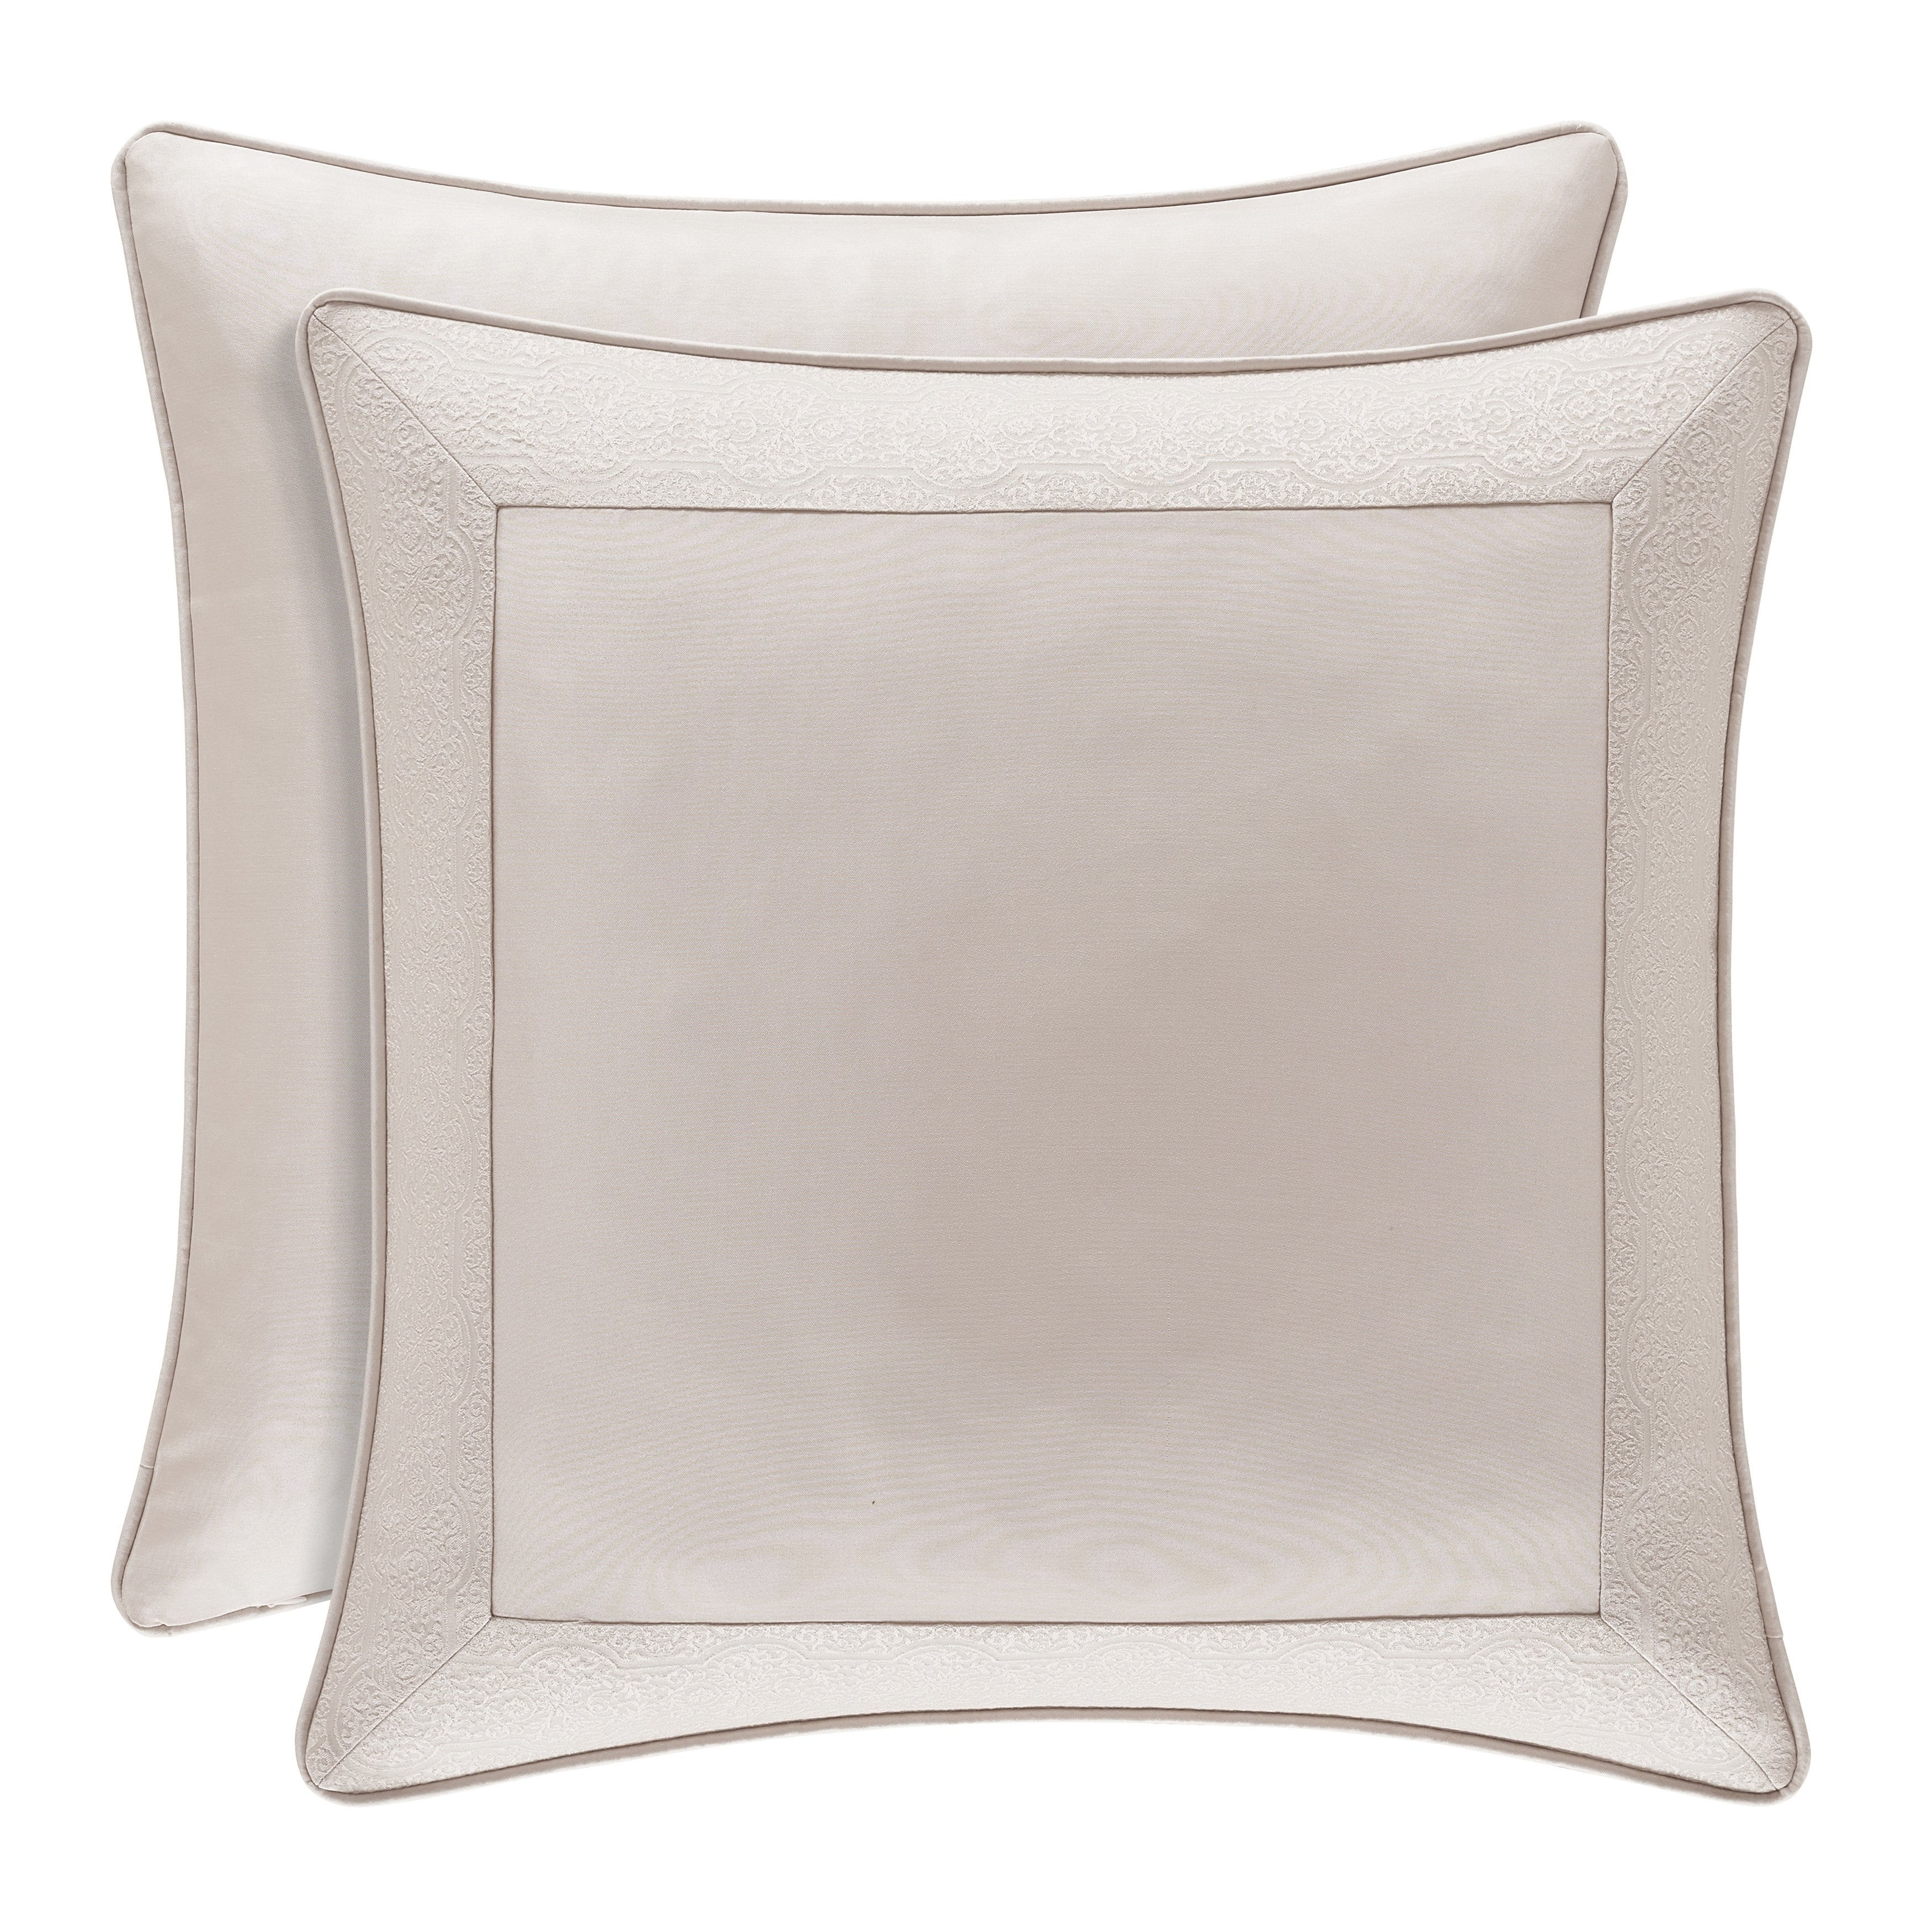 Gracewood Hollow Malinda Square Blush Euro Sham Overstock 28869710